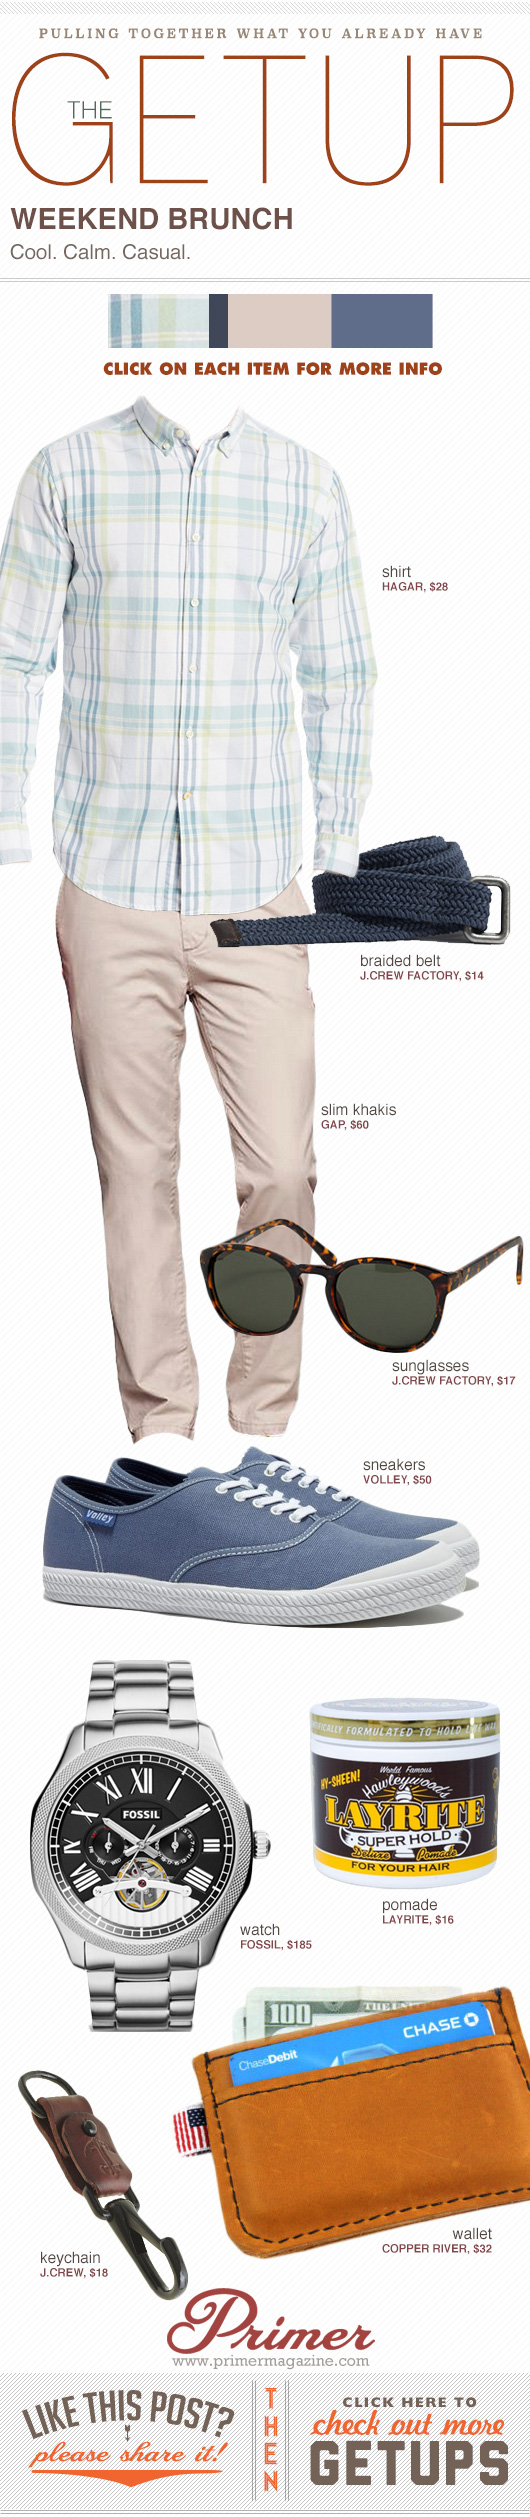 Getup Weekend Brunch - Plaid shirt with khakis and blue sneakers